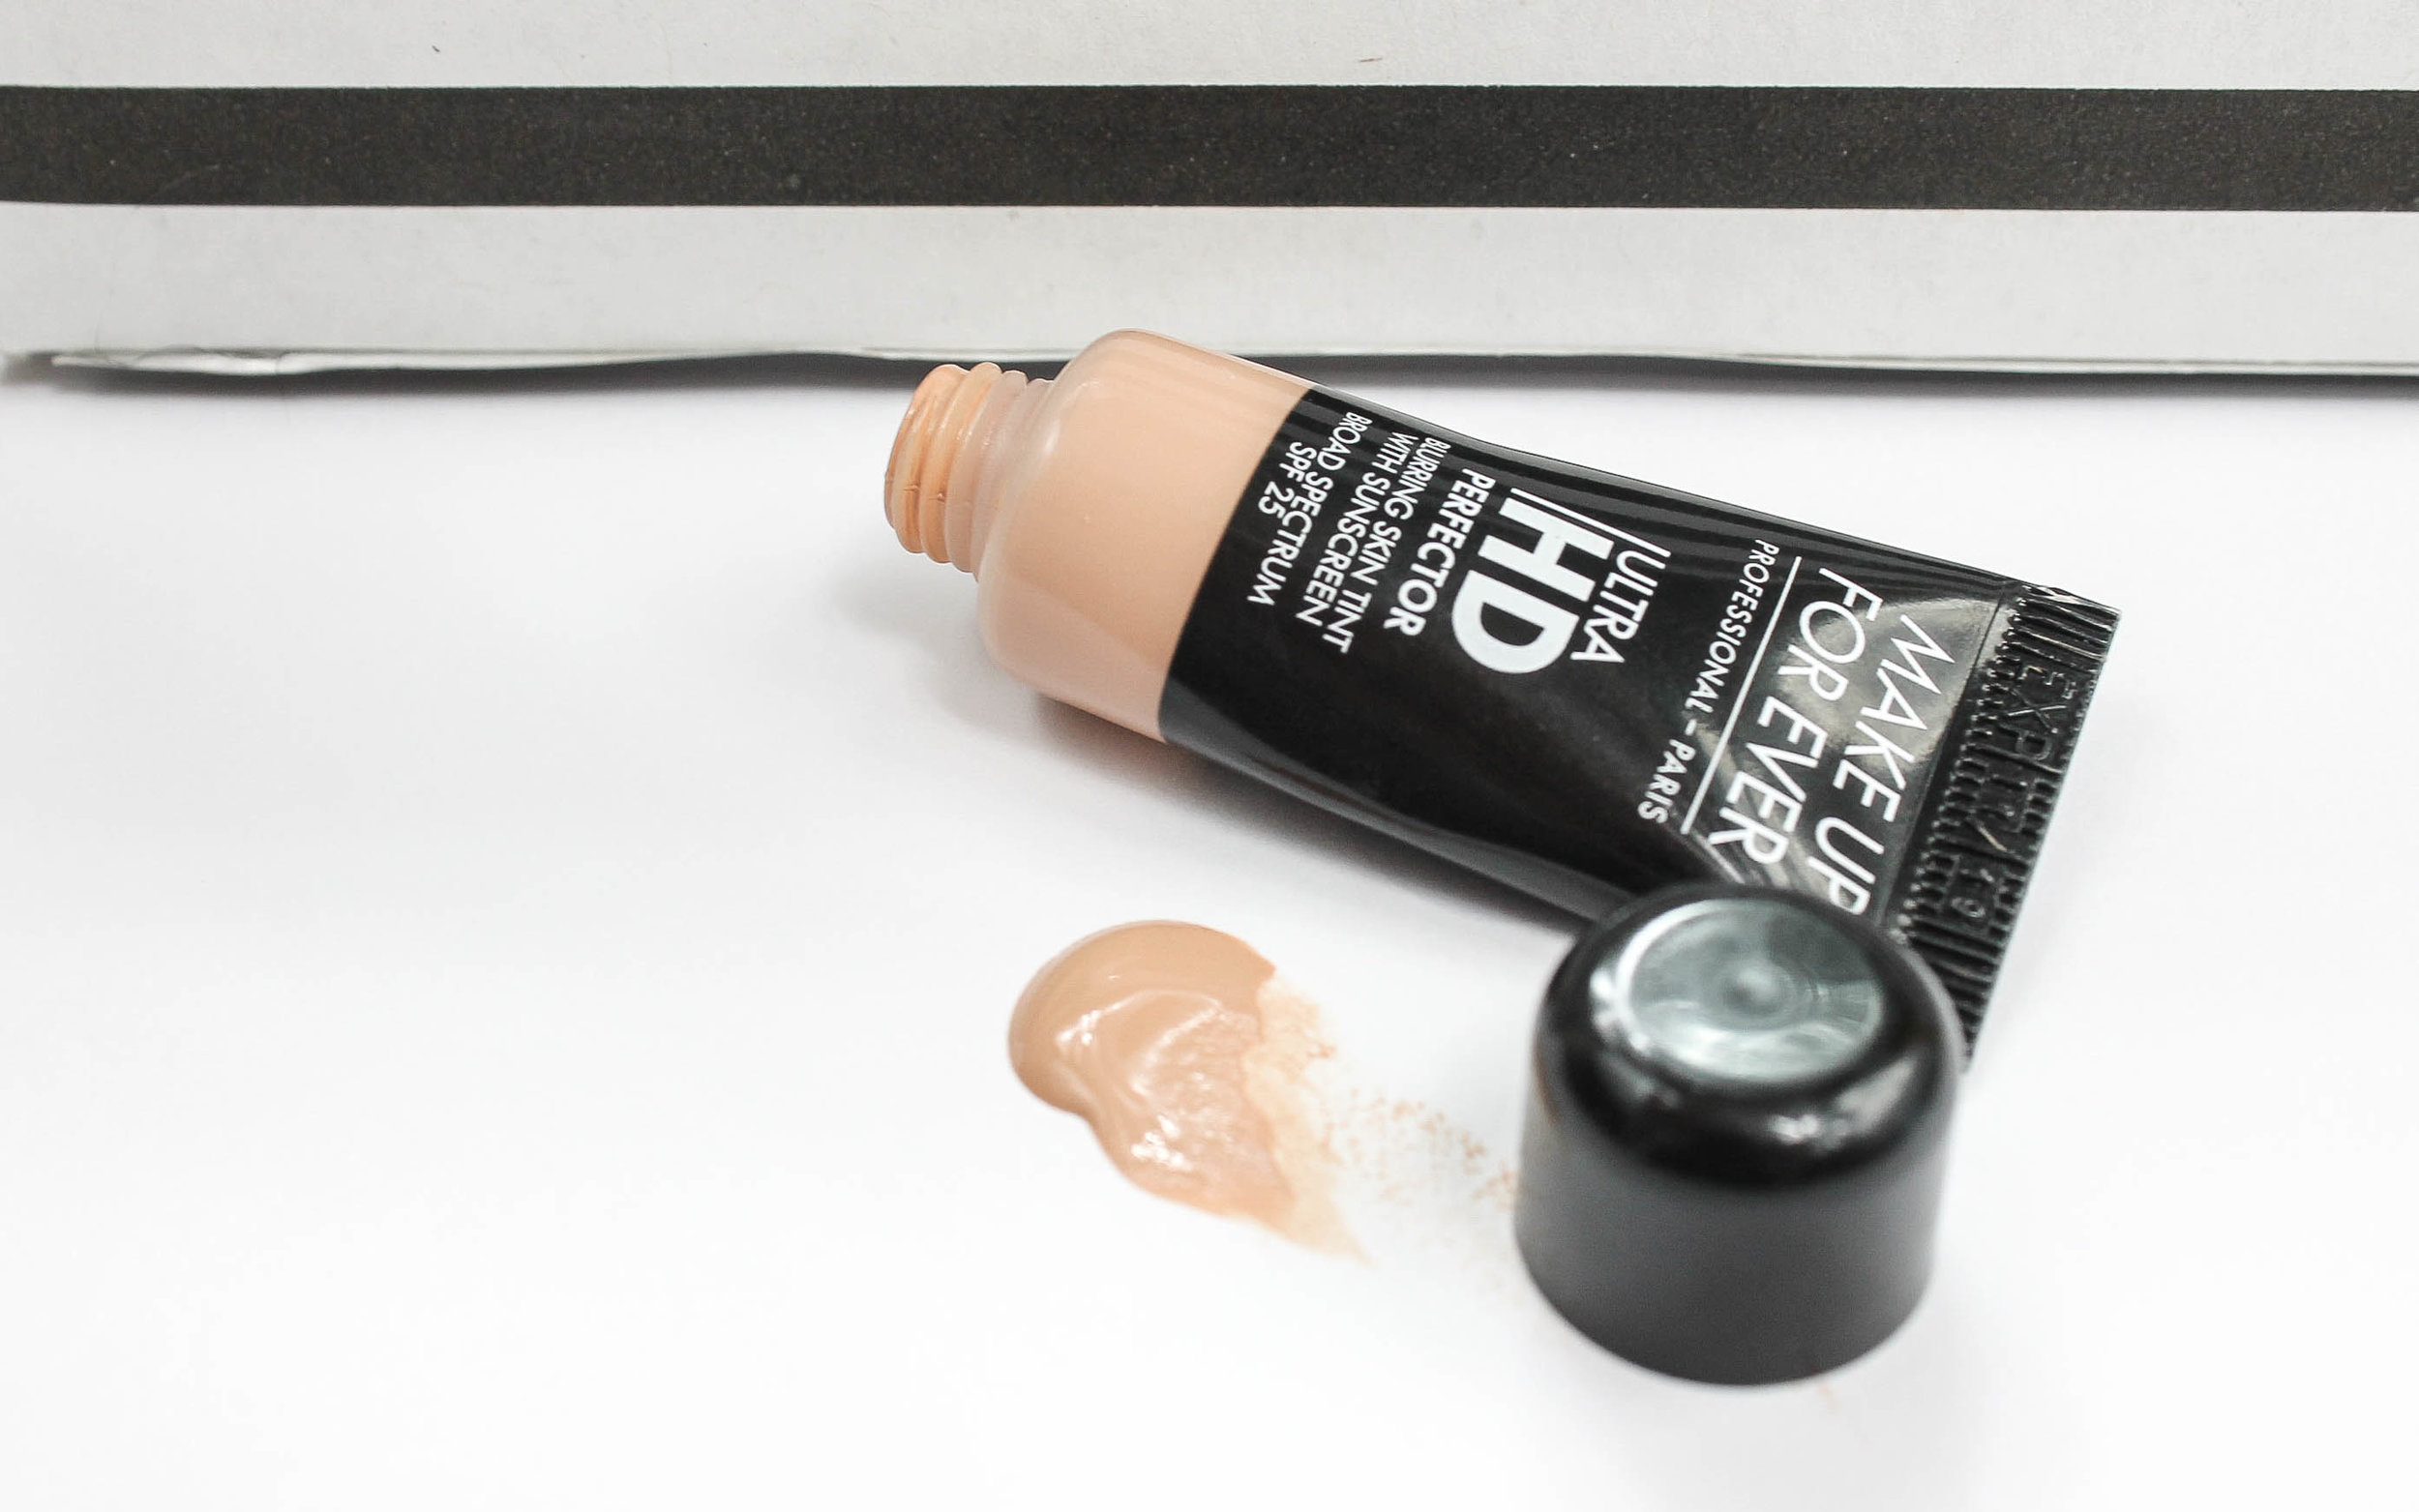 make up for ever ultra hd perfector blurring skin tint with sunscreen